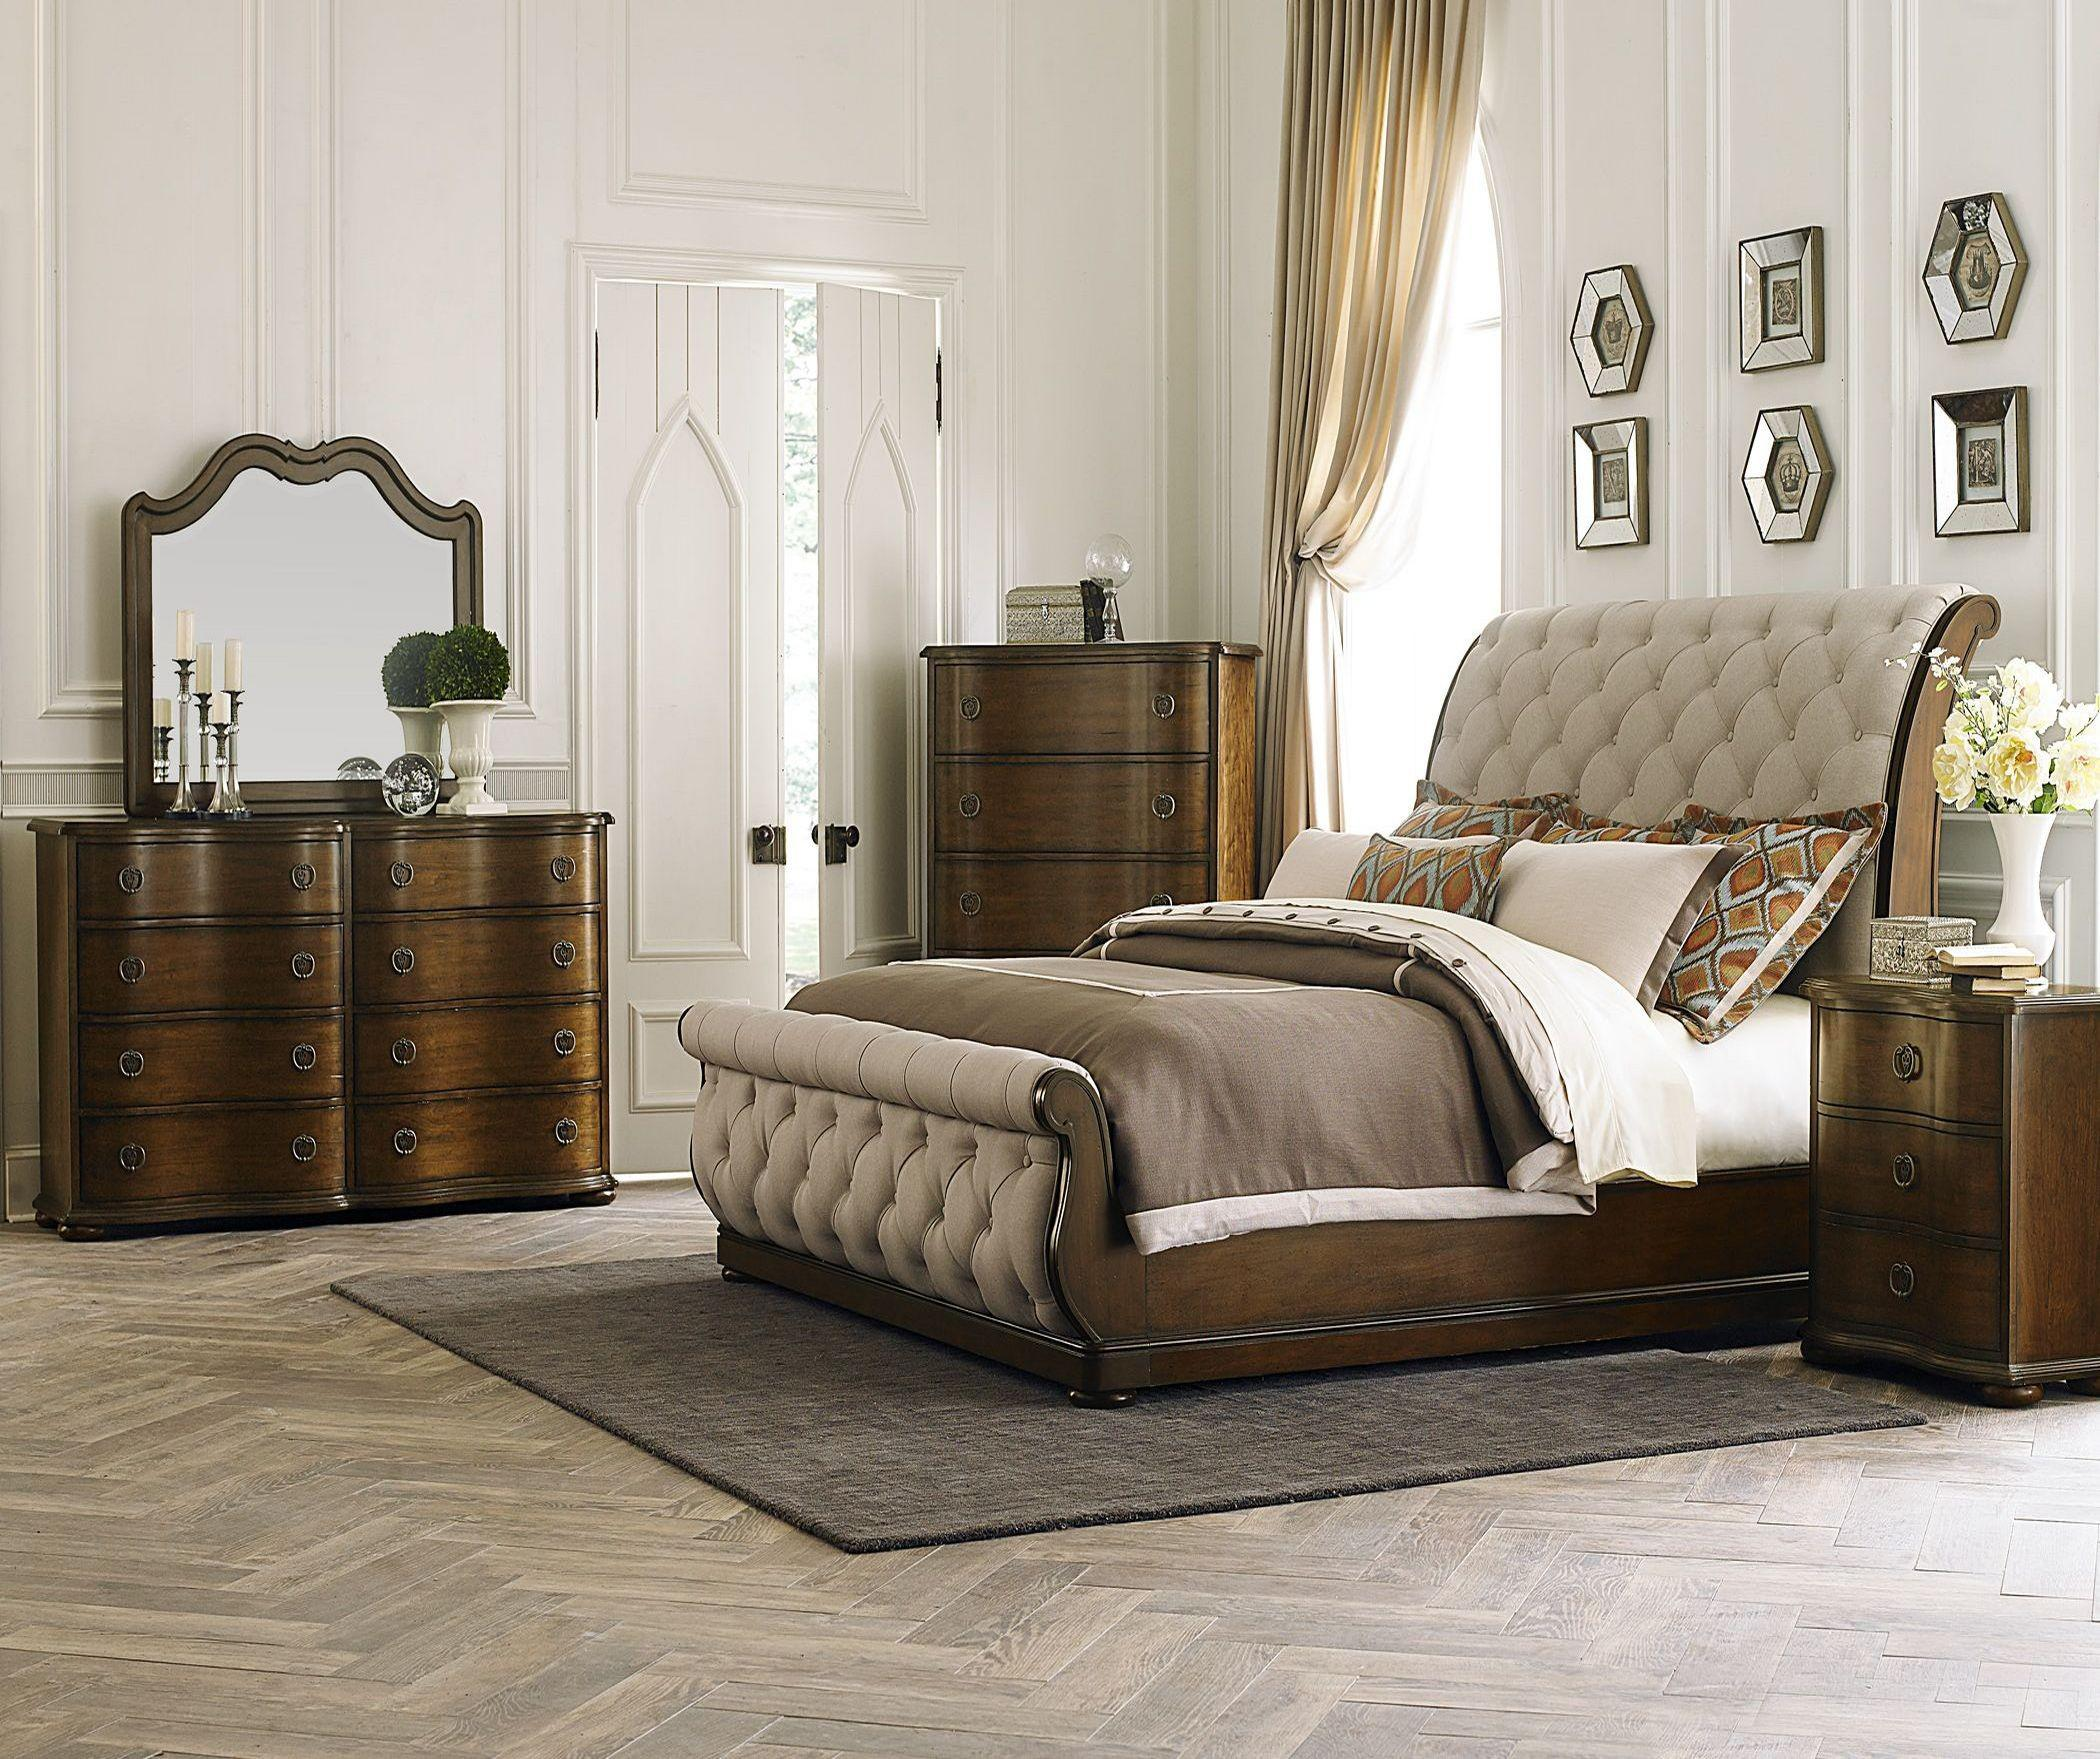 Image of: Sleigh Bedroom Sets Canada